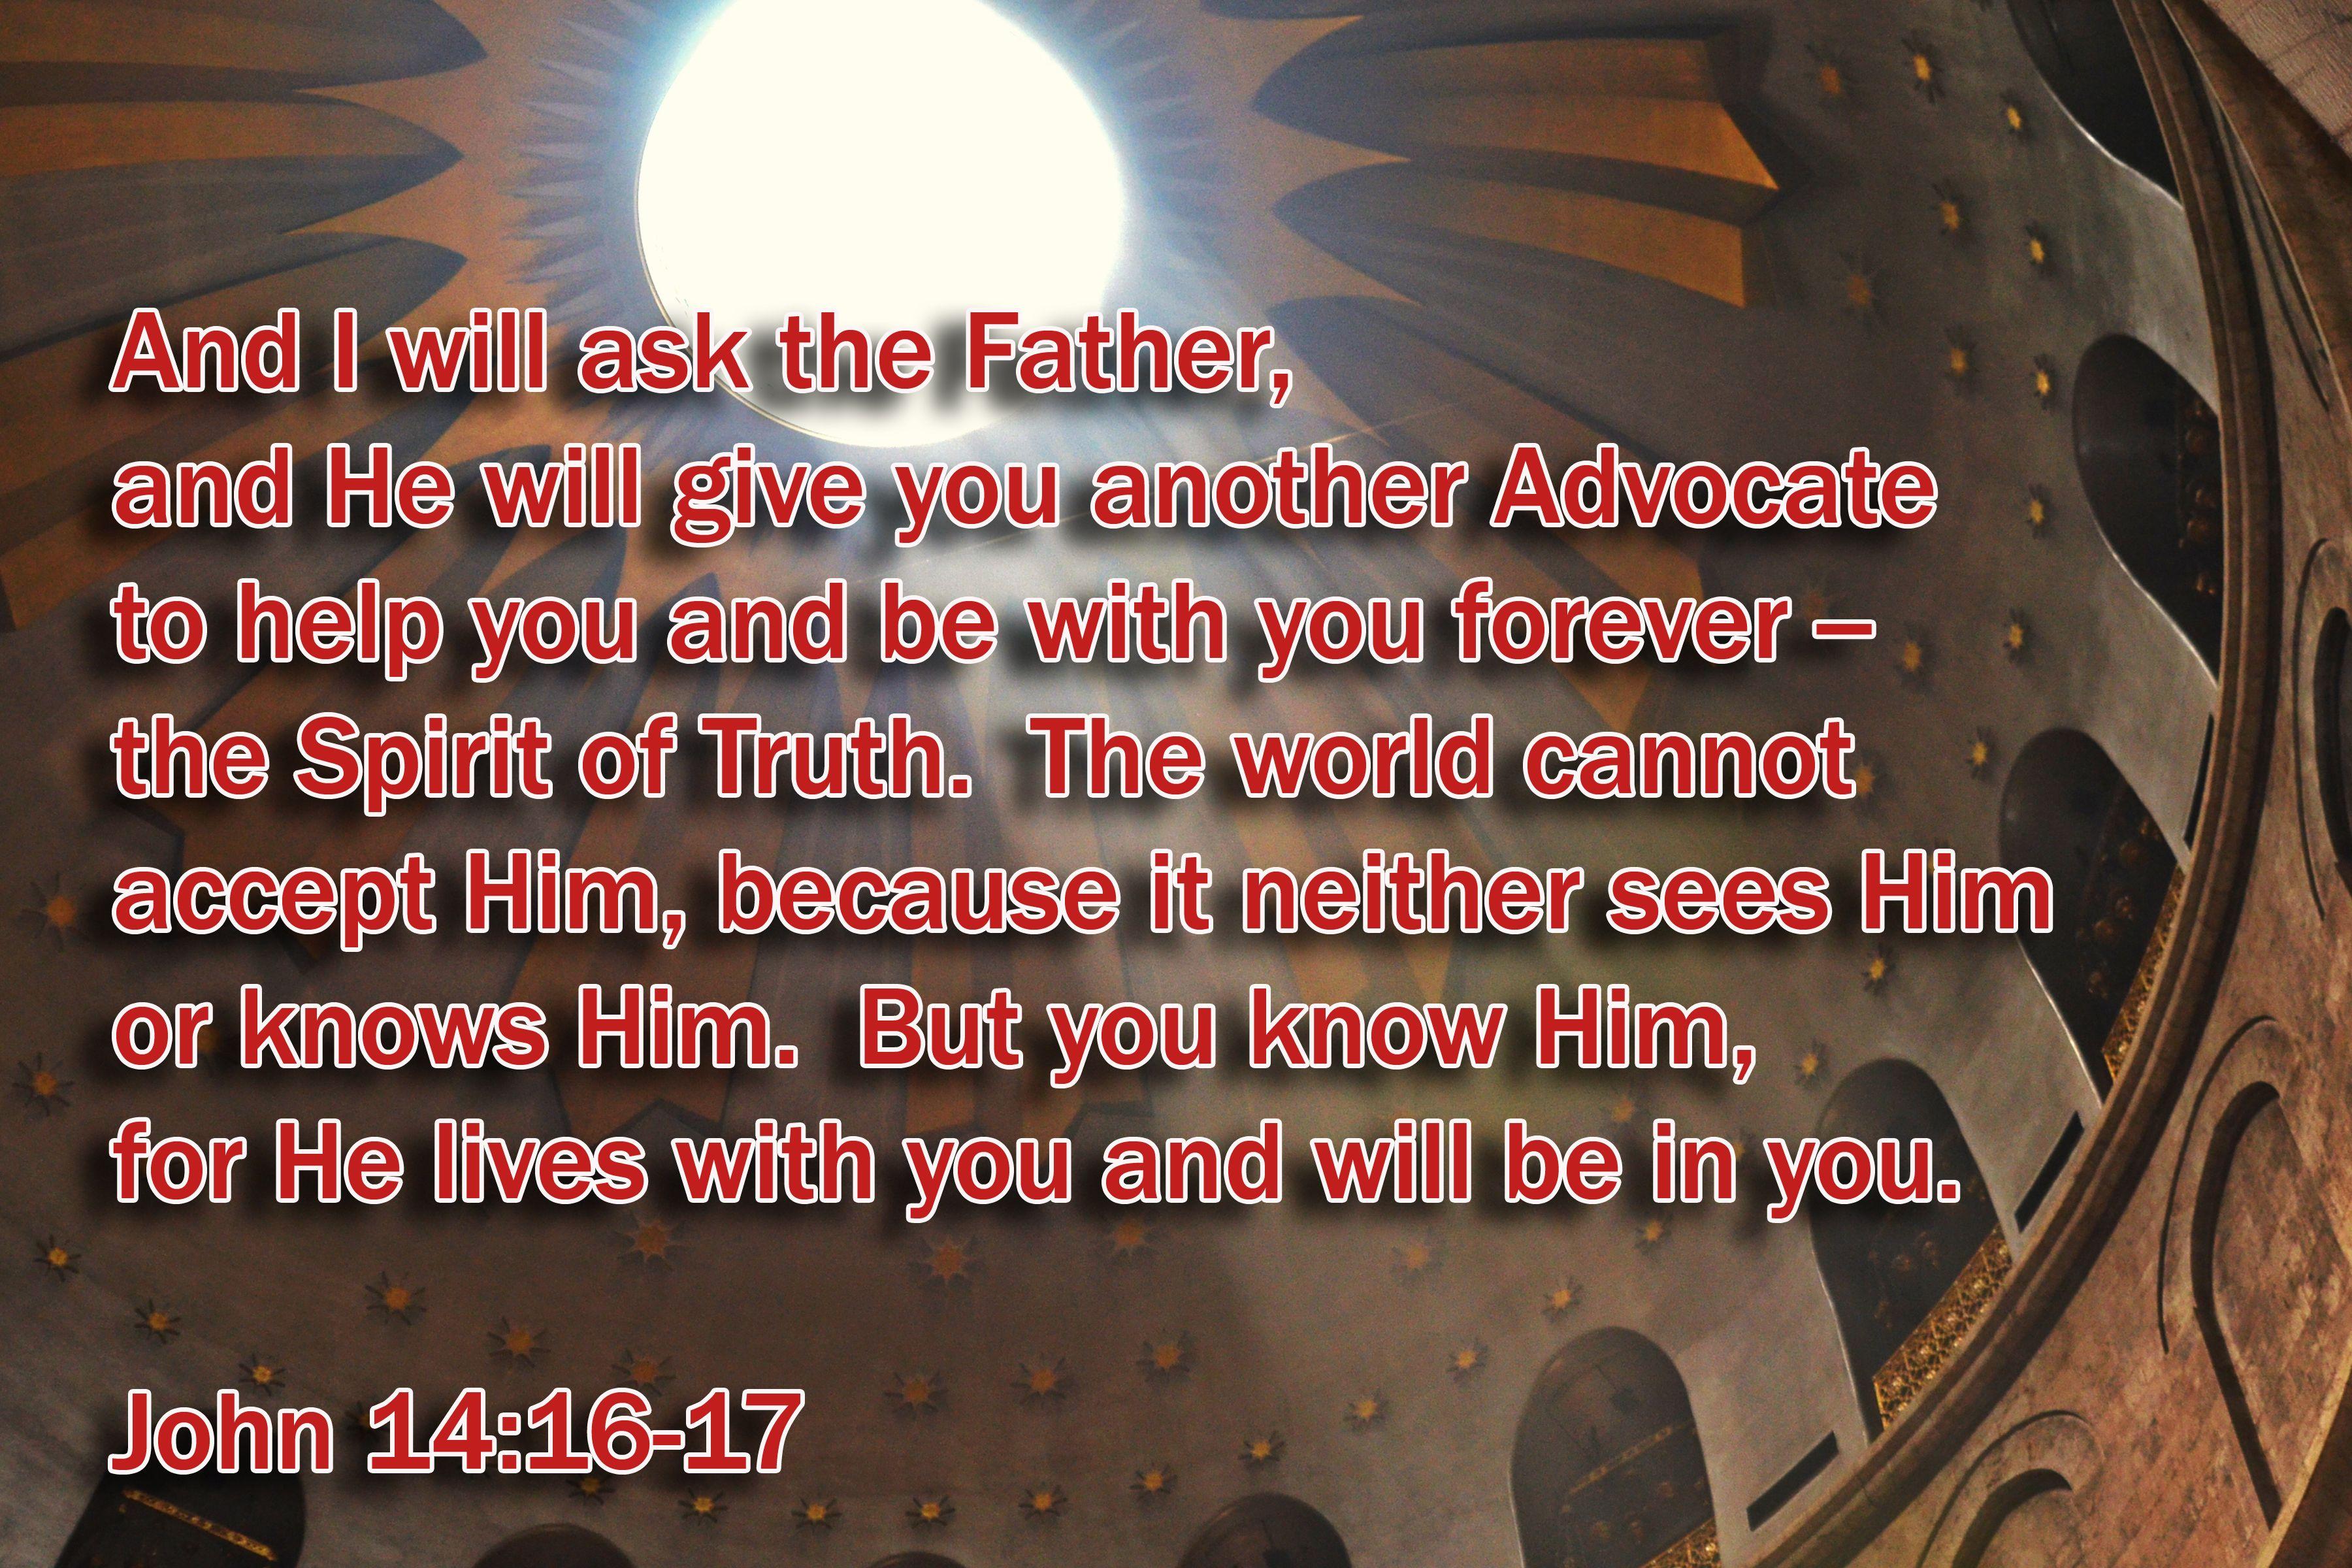 And I will ask the Father . . . | Spirit of truth, Truth ...